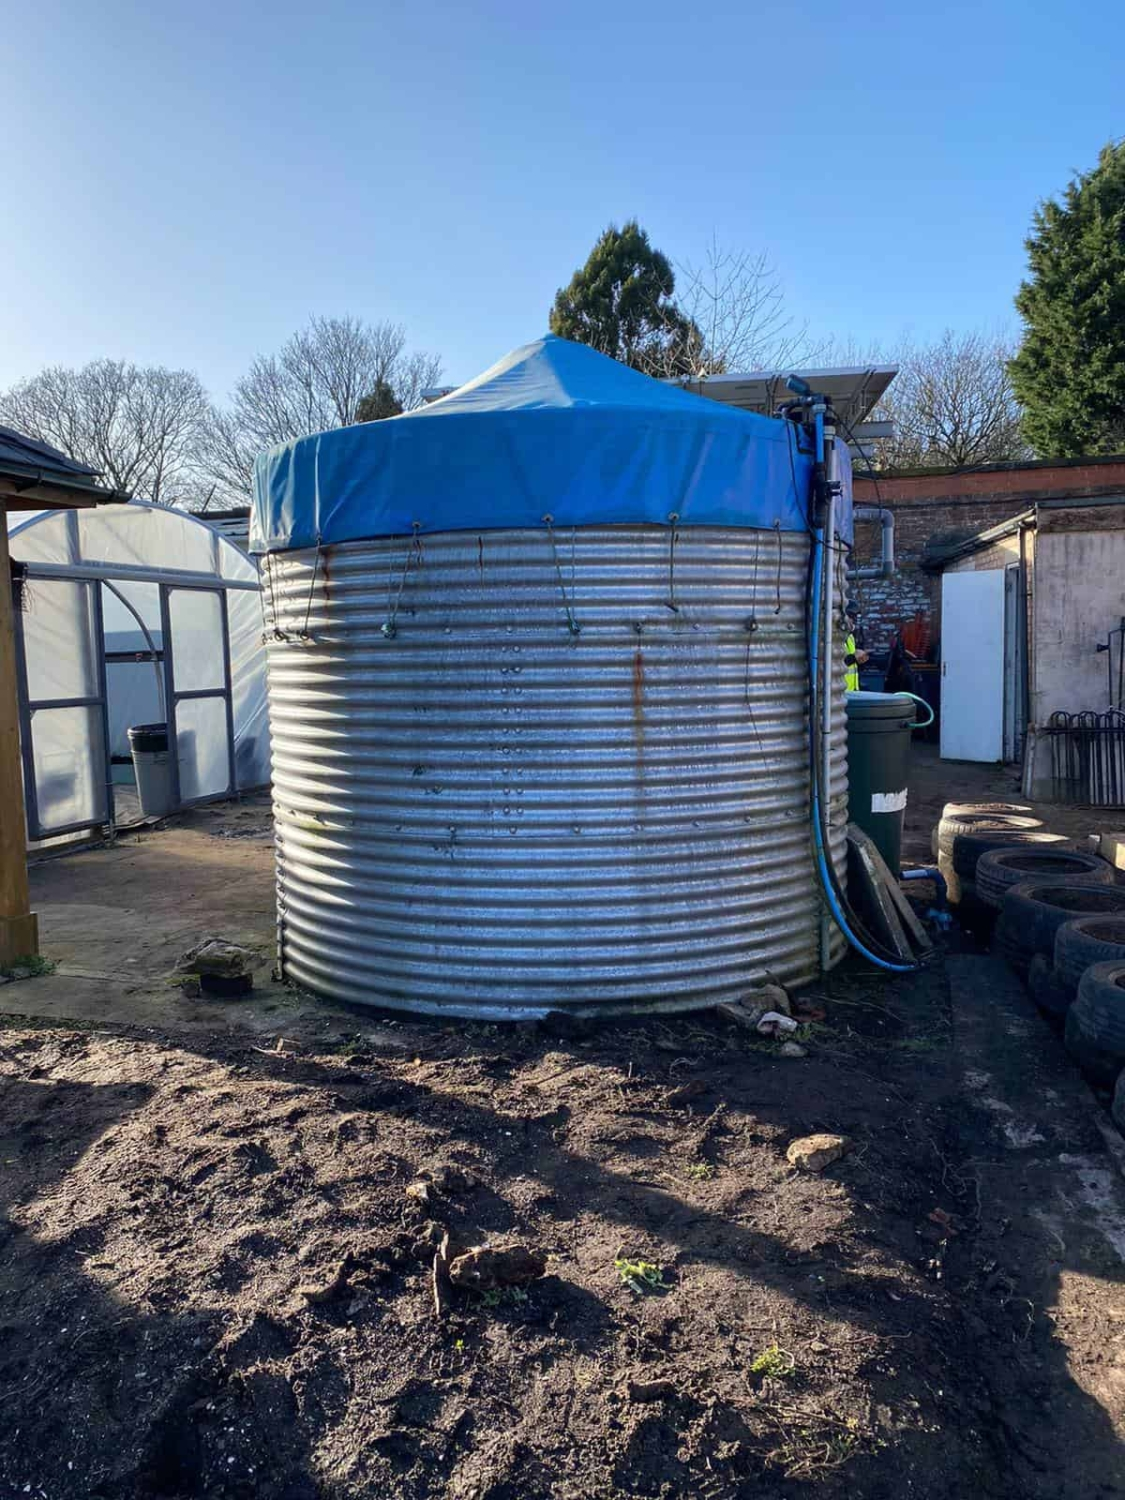 The Rainwater recovery tank